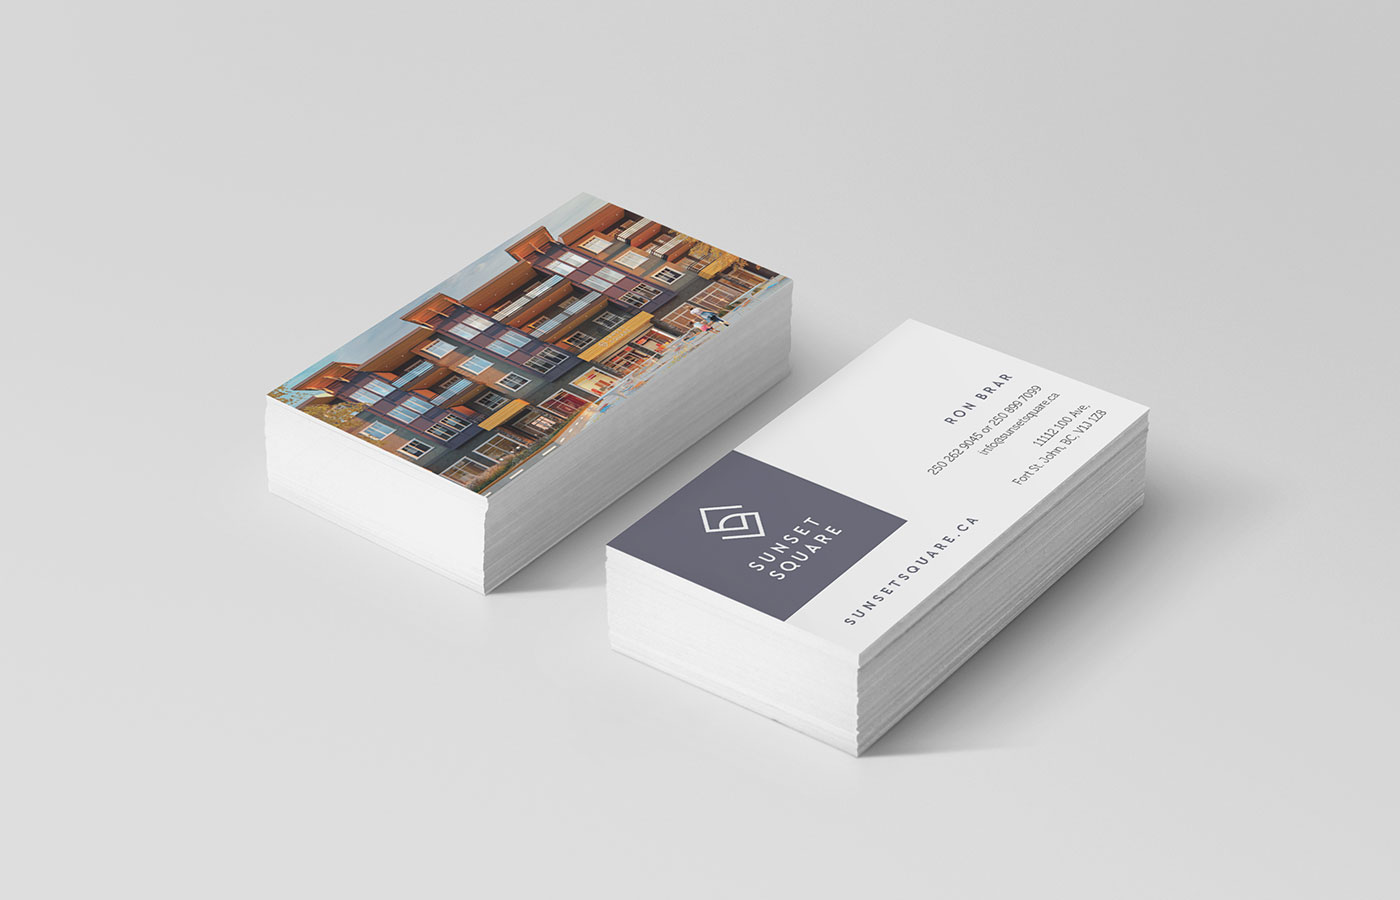 covetdesign_logo-design_branding_package-design_graphic-design_vancouver_work_wide_sunsetsquare_business-card